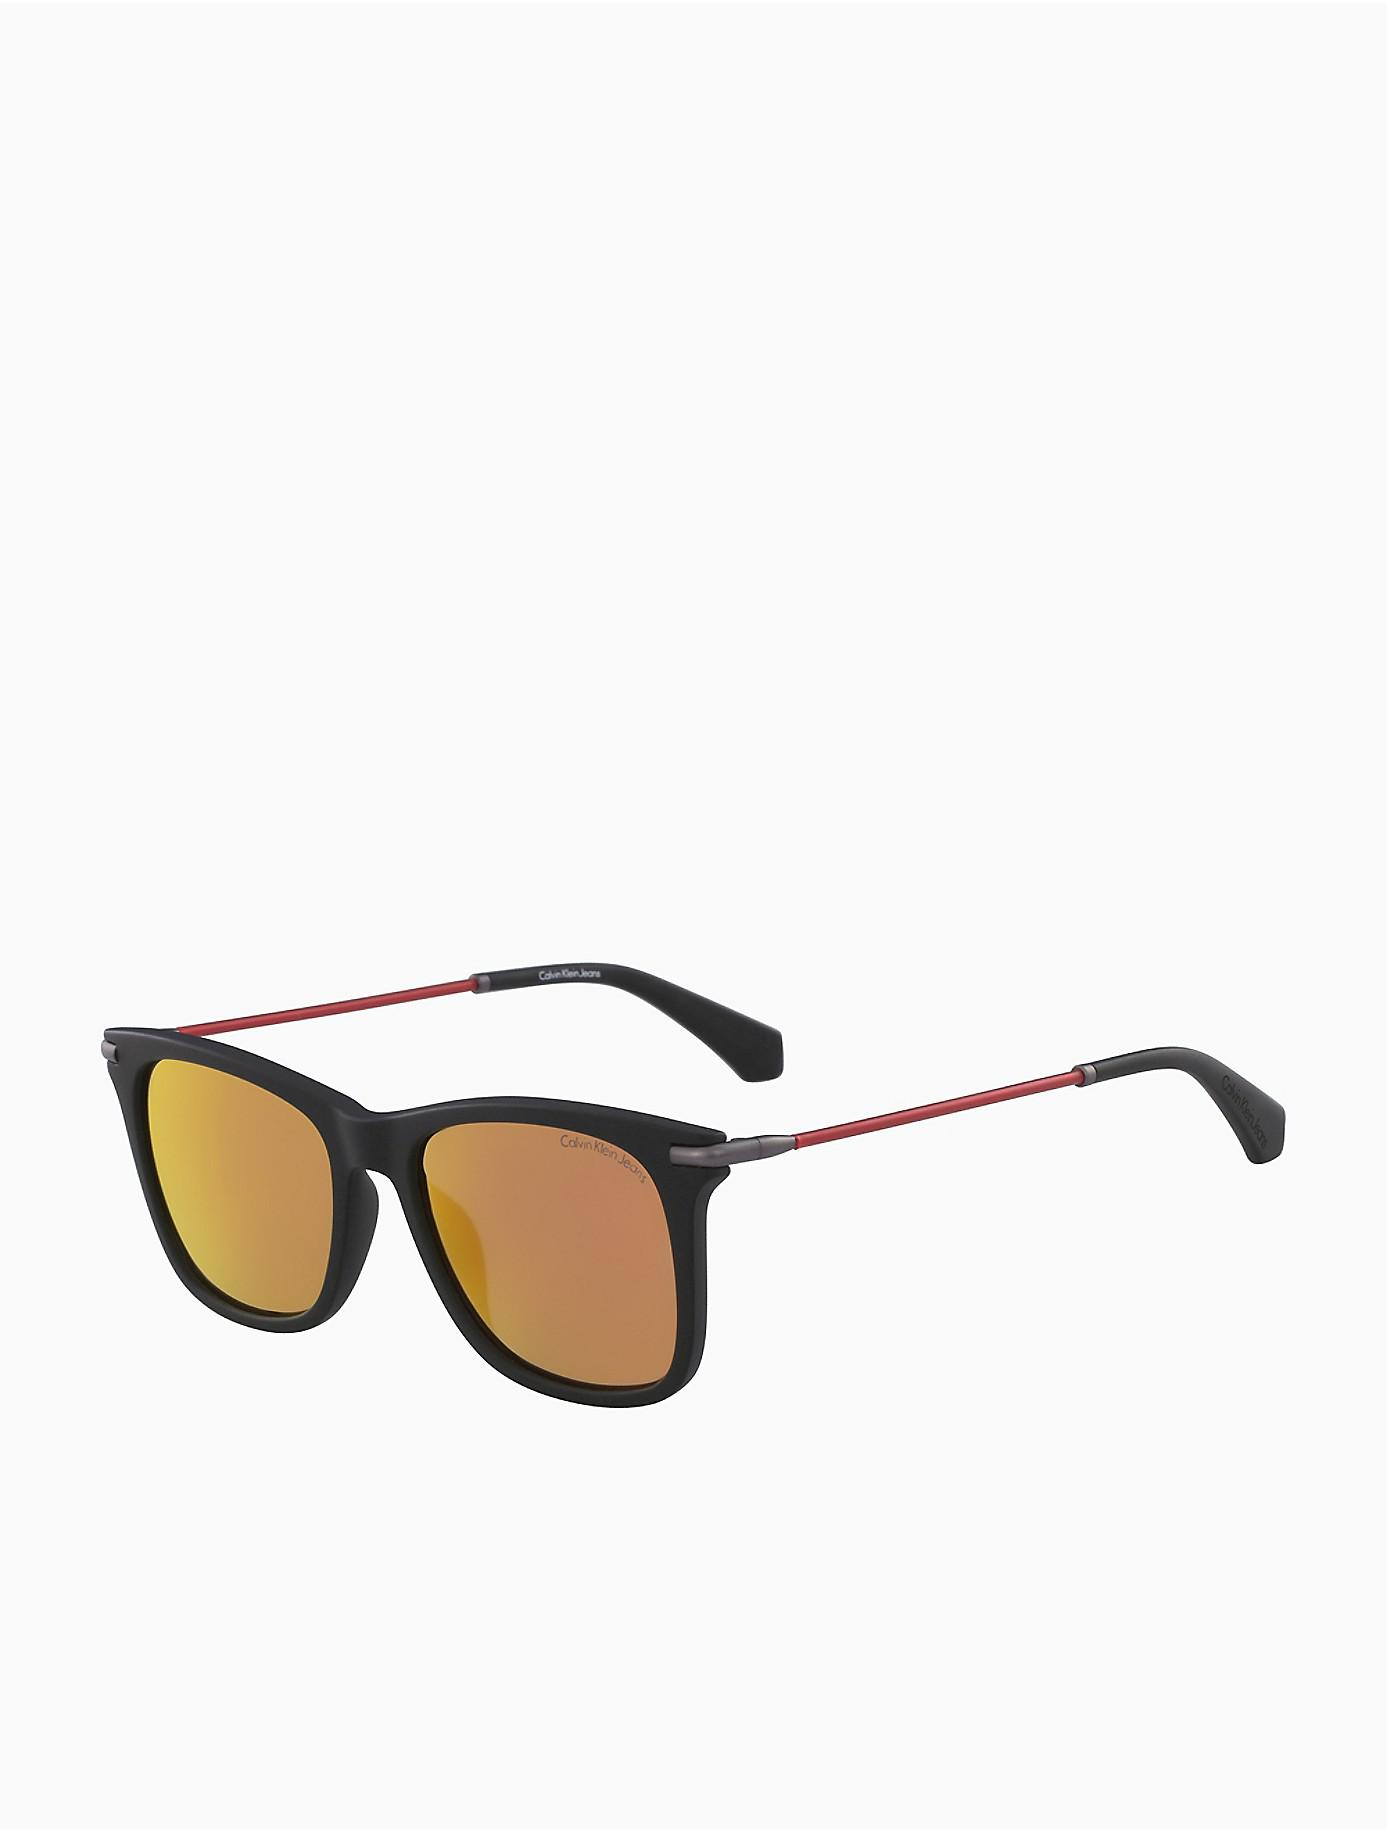 24770d001064 Lyst - Calvin Klein Metal Modified Rectangle Sunglasses in Black